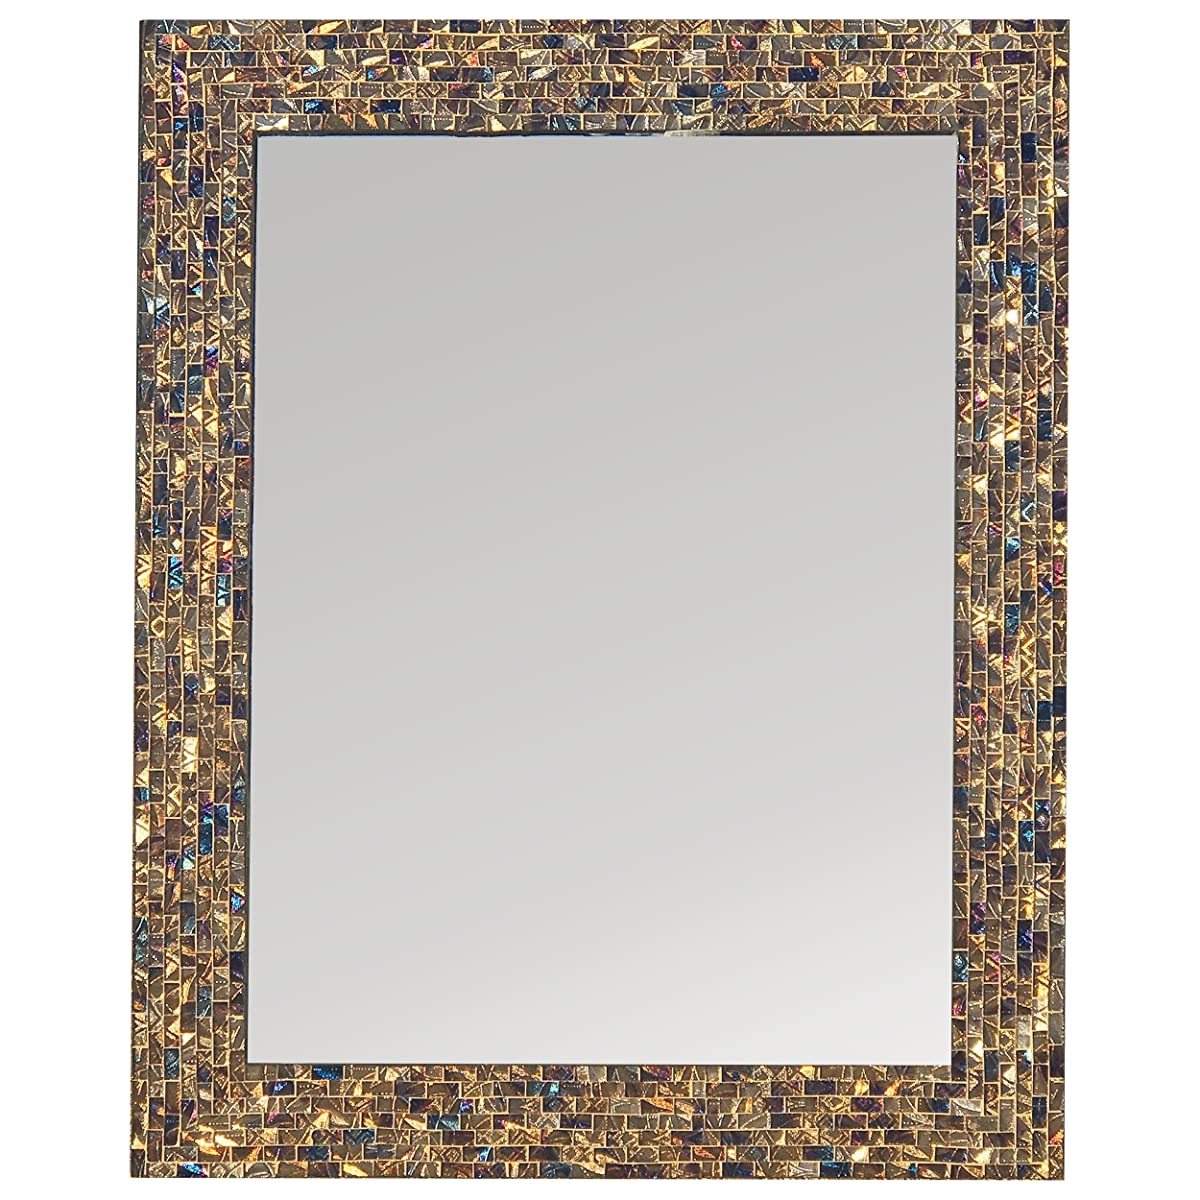 Multi-Colored & Gold, Luxe Mosaic Glass Framed Wall Mirror, Decorative Embossed Mosaic Rectangular Vanity Mirror/Accent Mirror (Large)